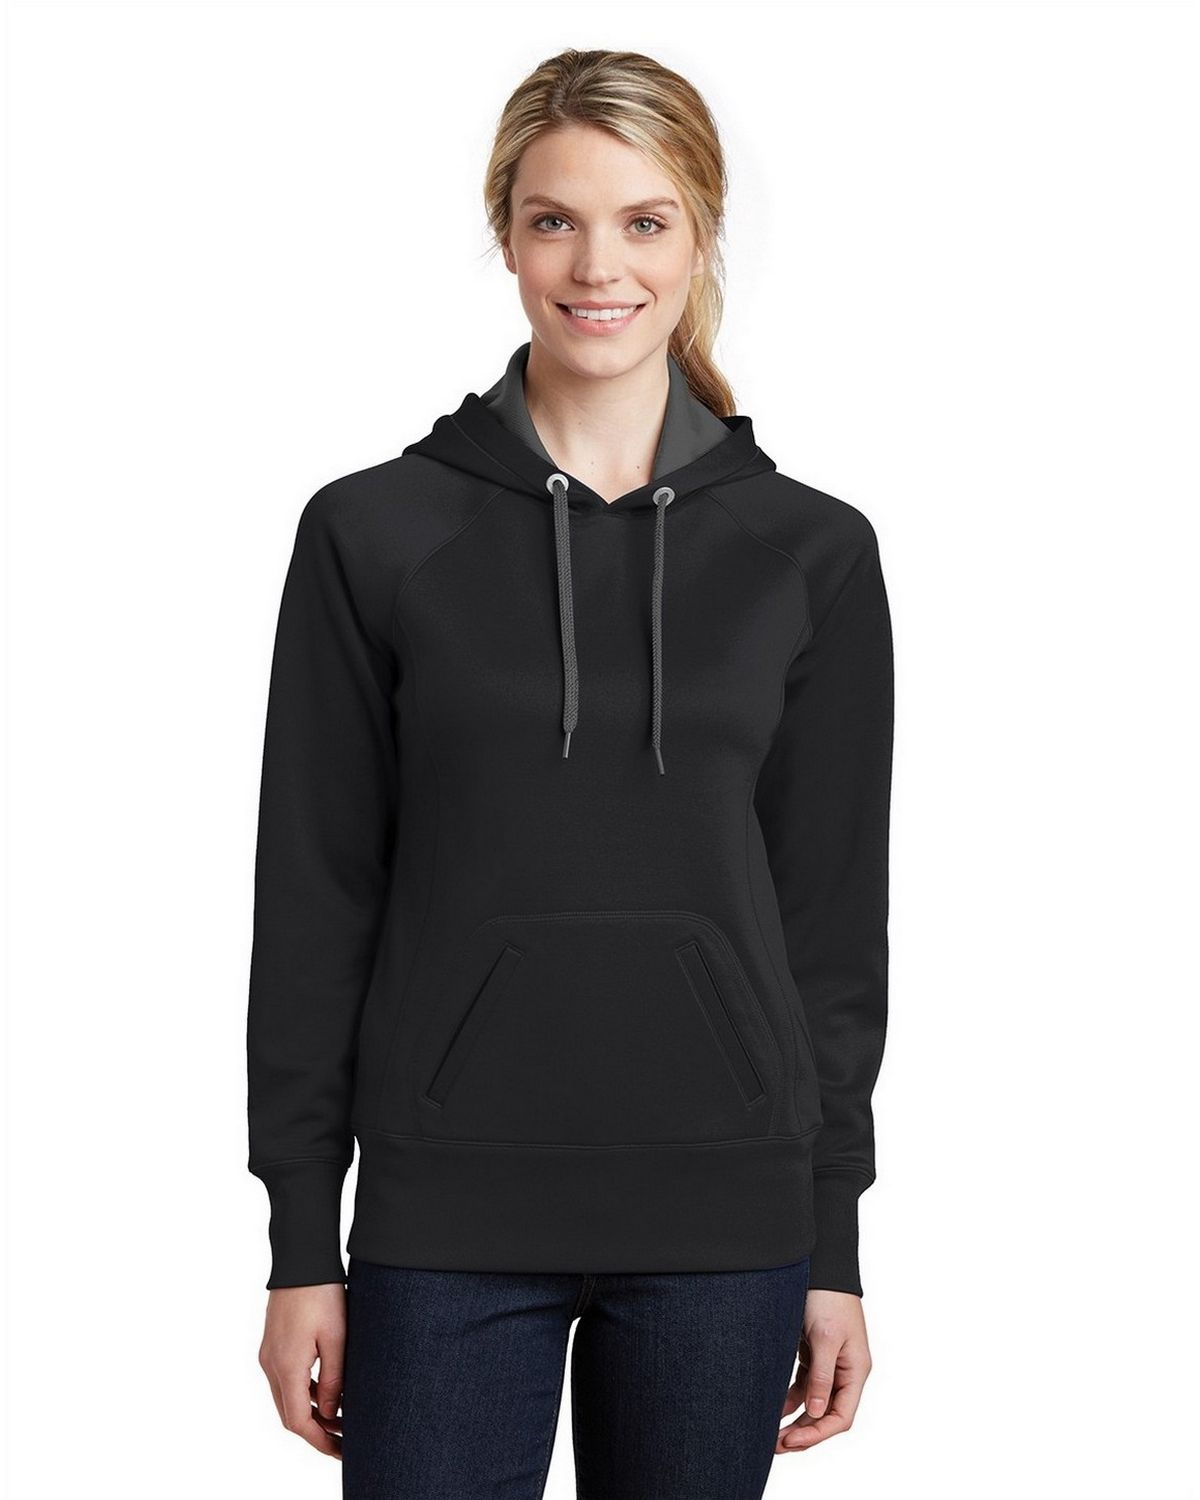 Sport-Tek LST250 Ladies Sweatshirt - Black - XXL LST250